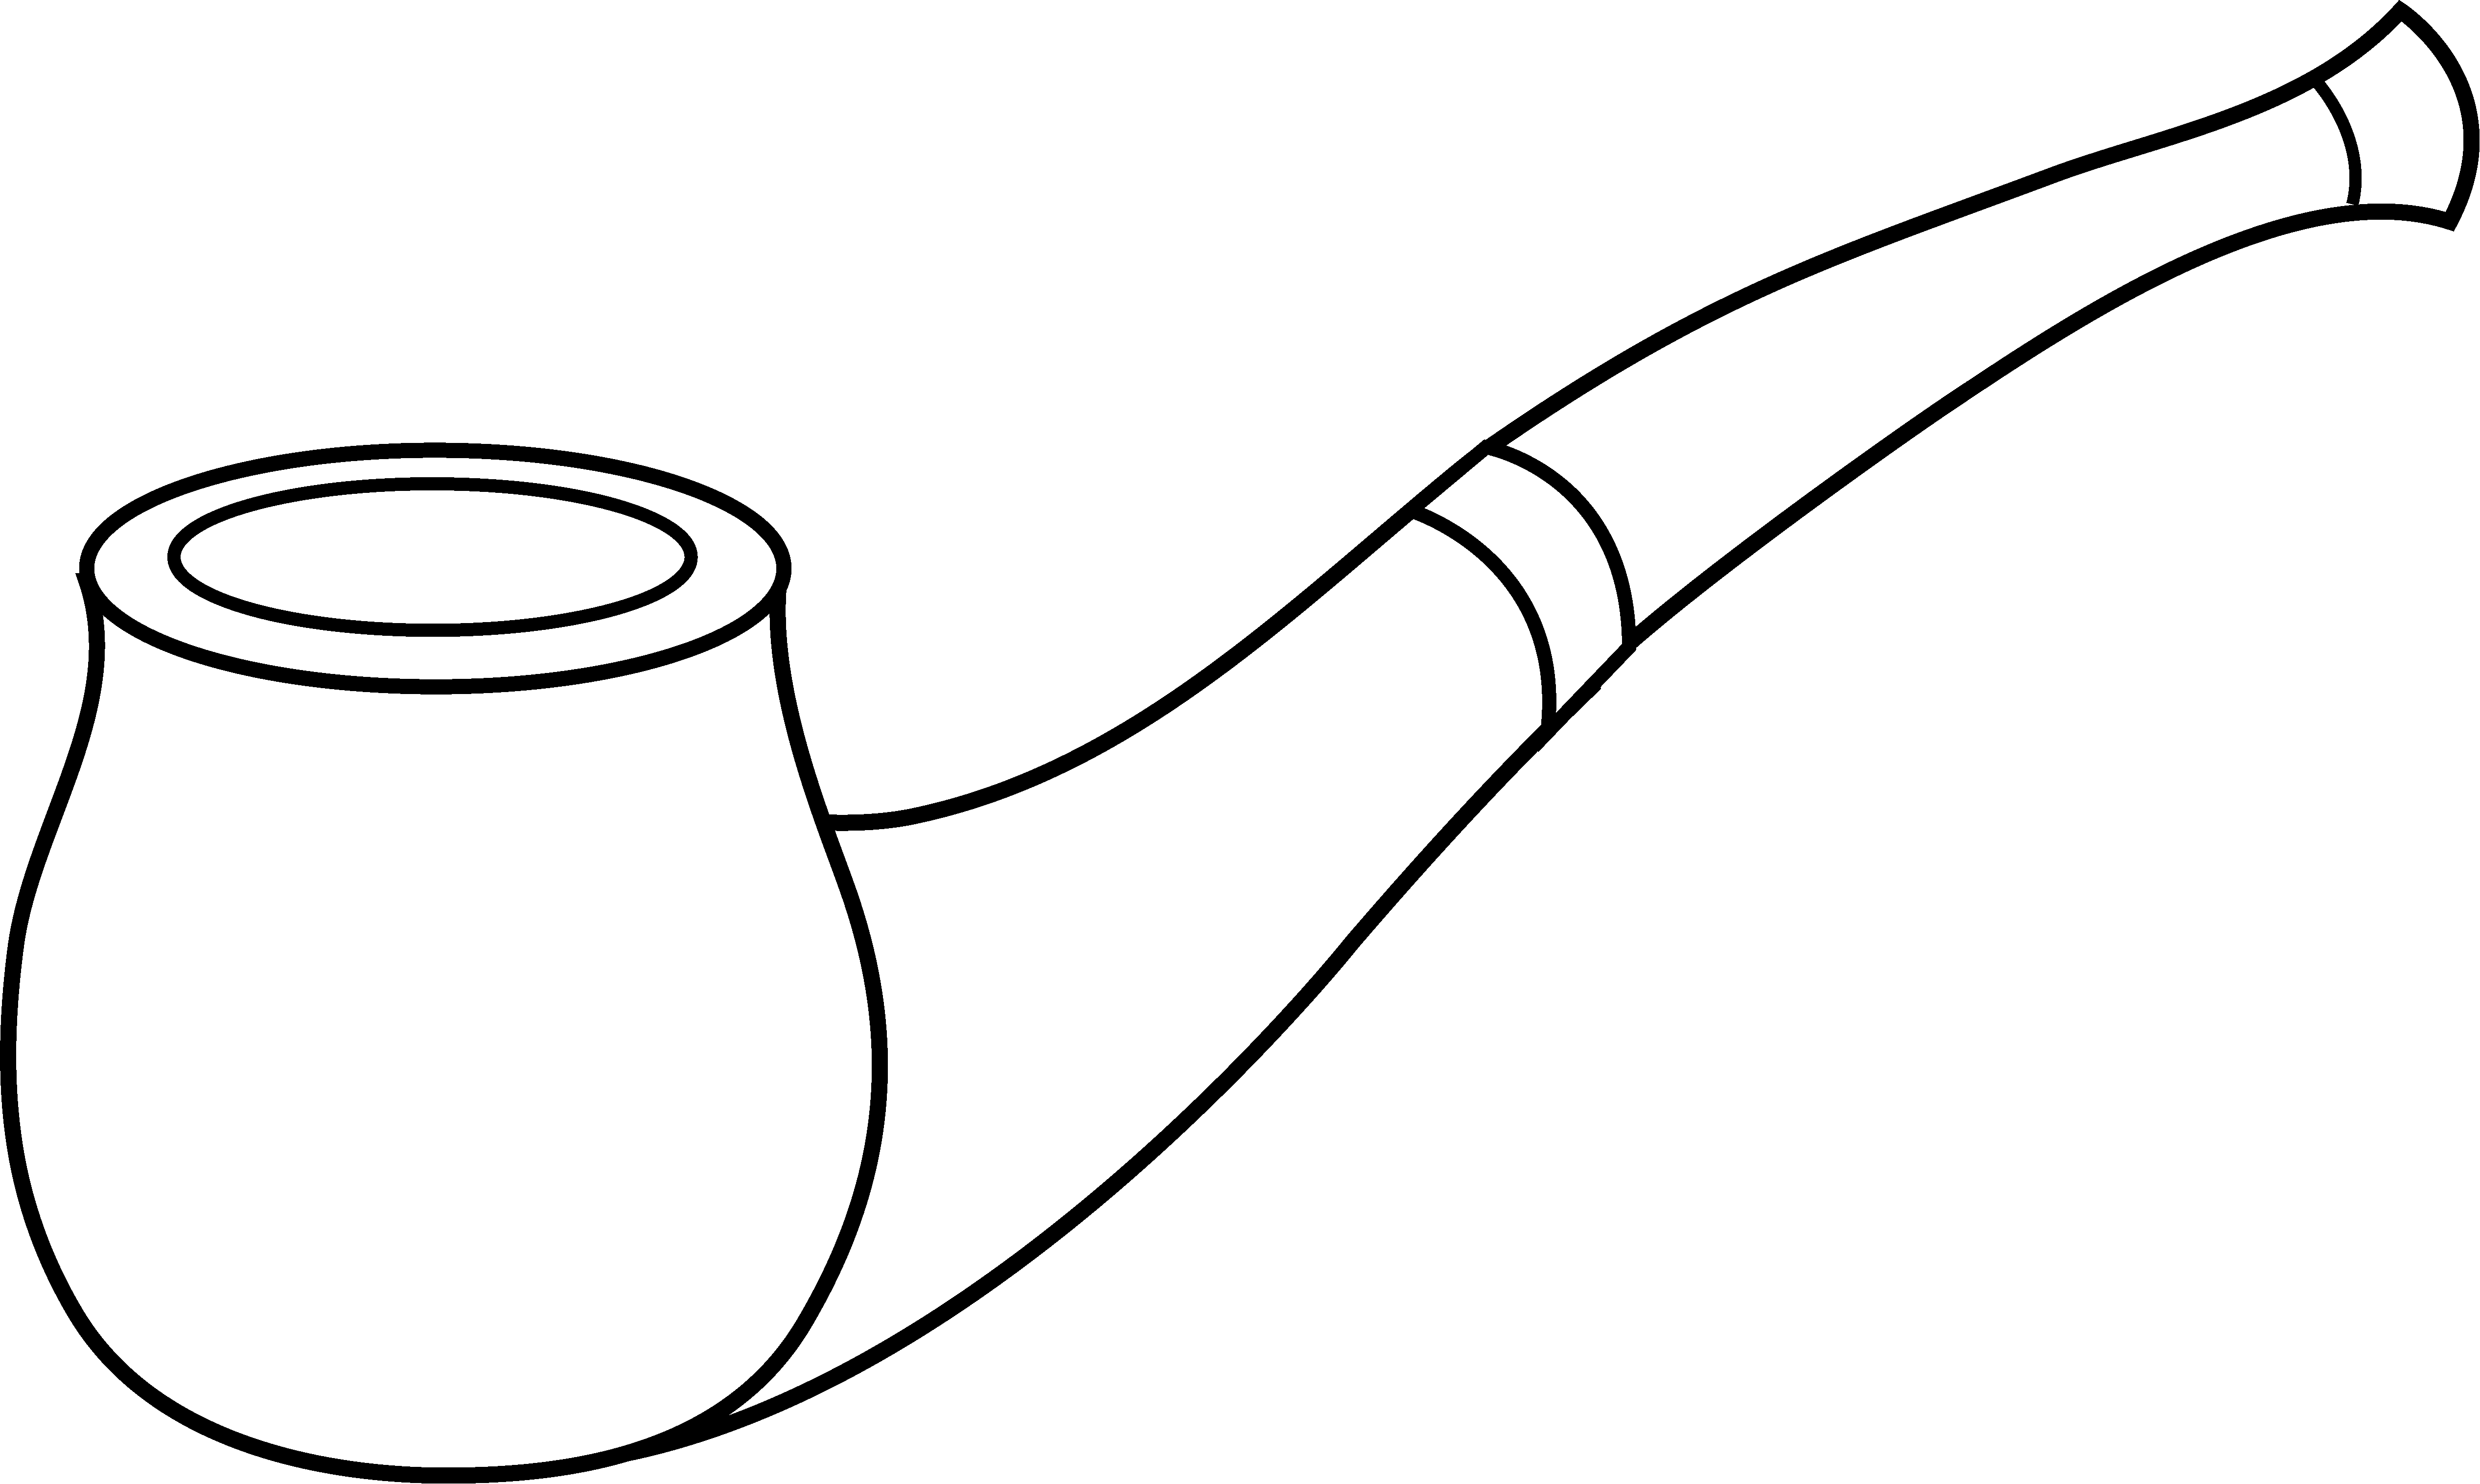 Pipe Line Art Drawing Free Clip Clip Art-Pipe line art drawing free clip clip art-10